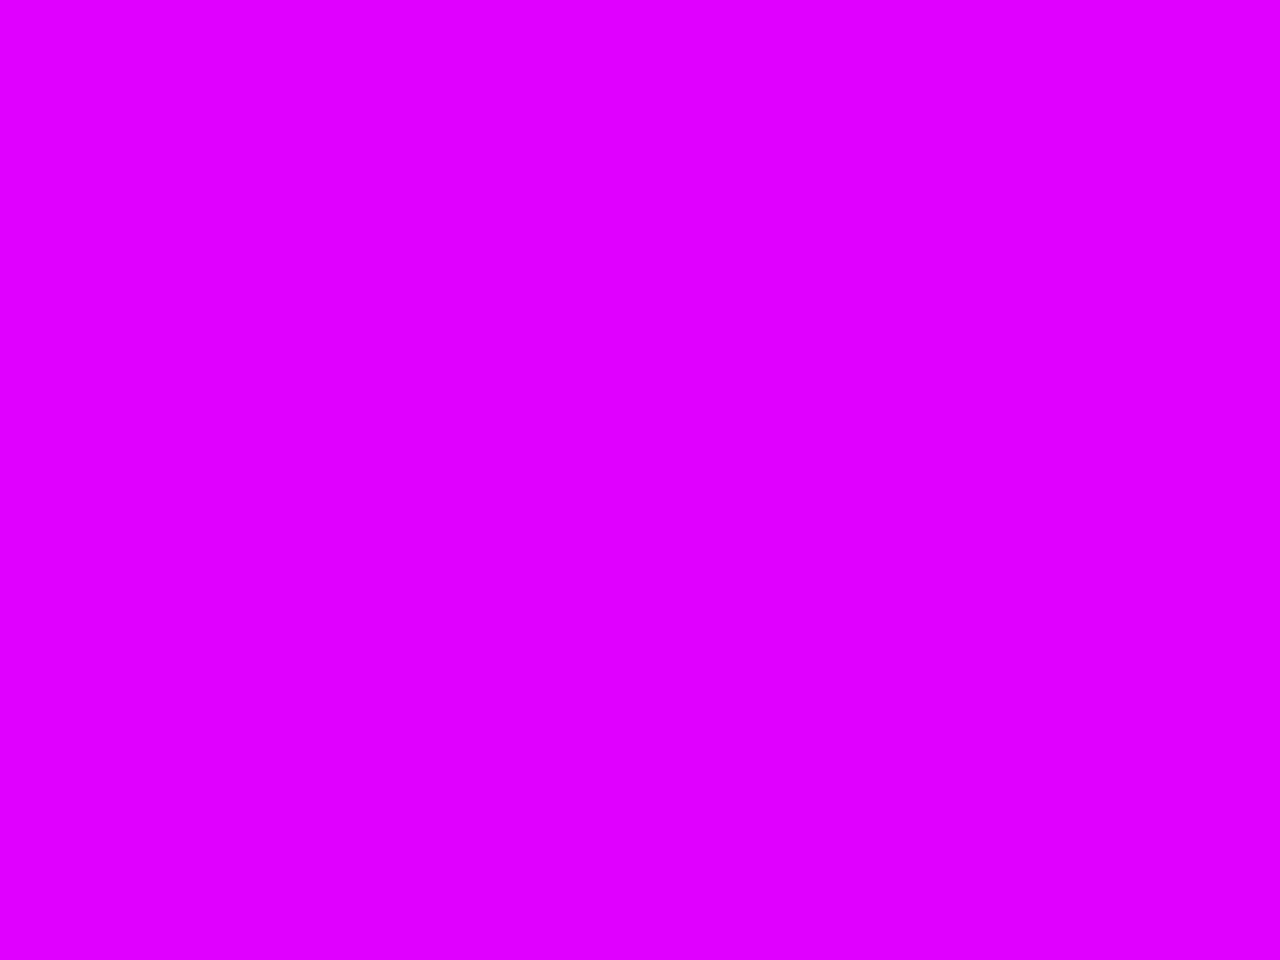 1280x960 Phlox Solid Color Background